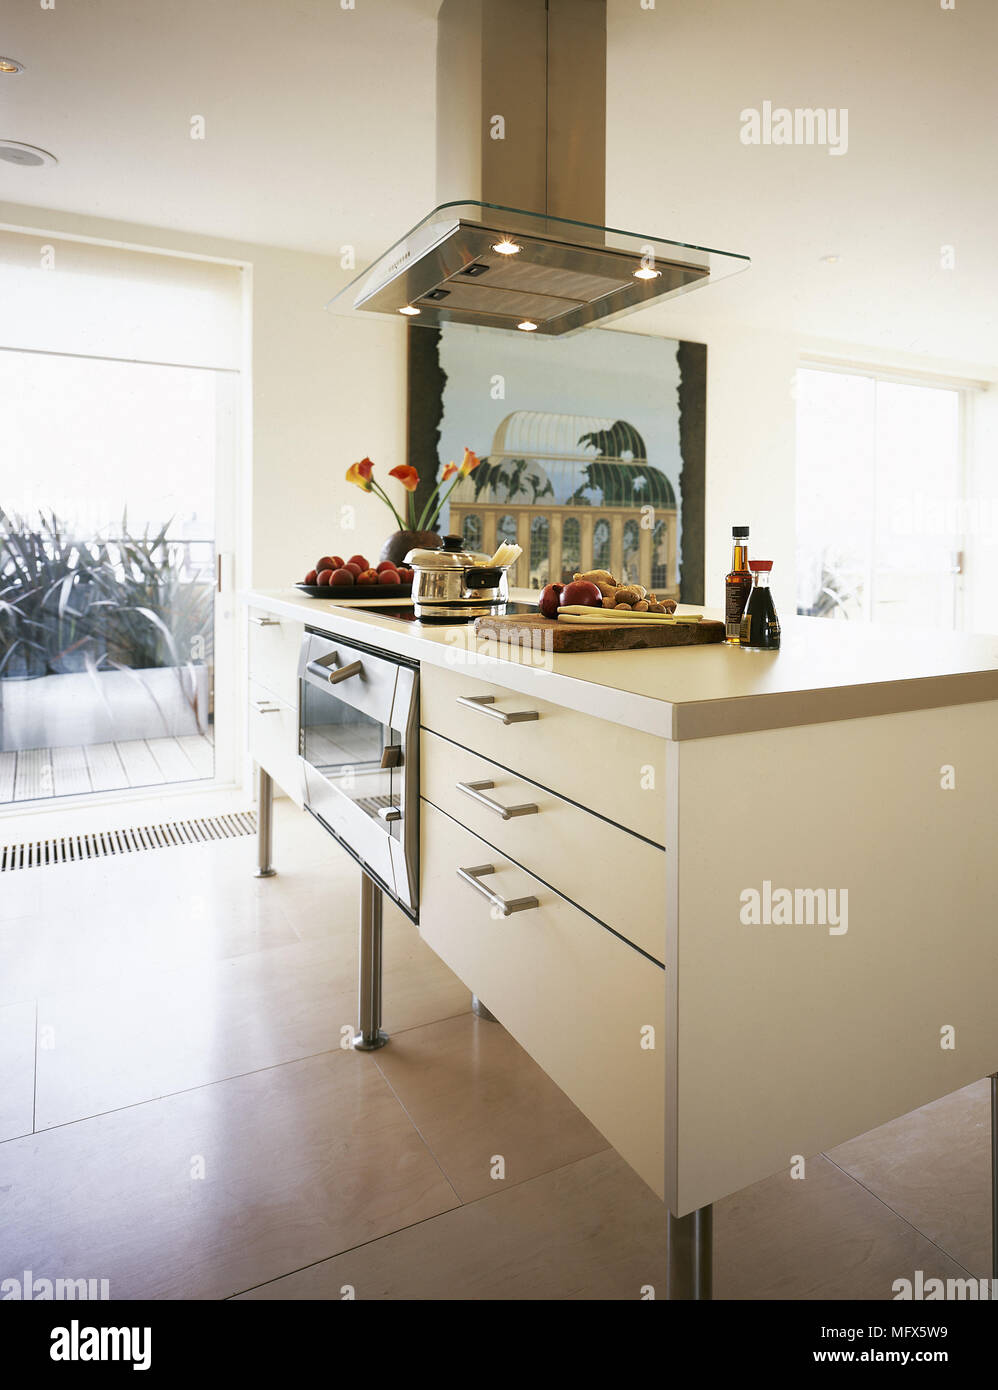 Modern, open kitchen with a tiled floor, central island unit ...